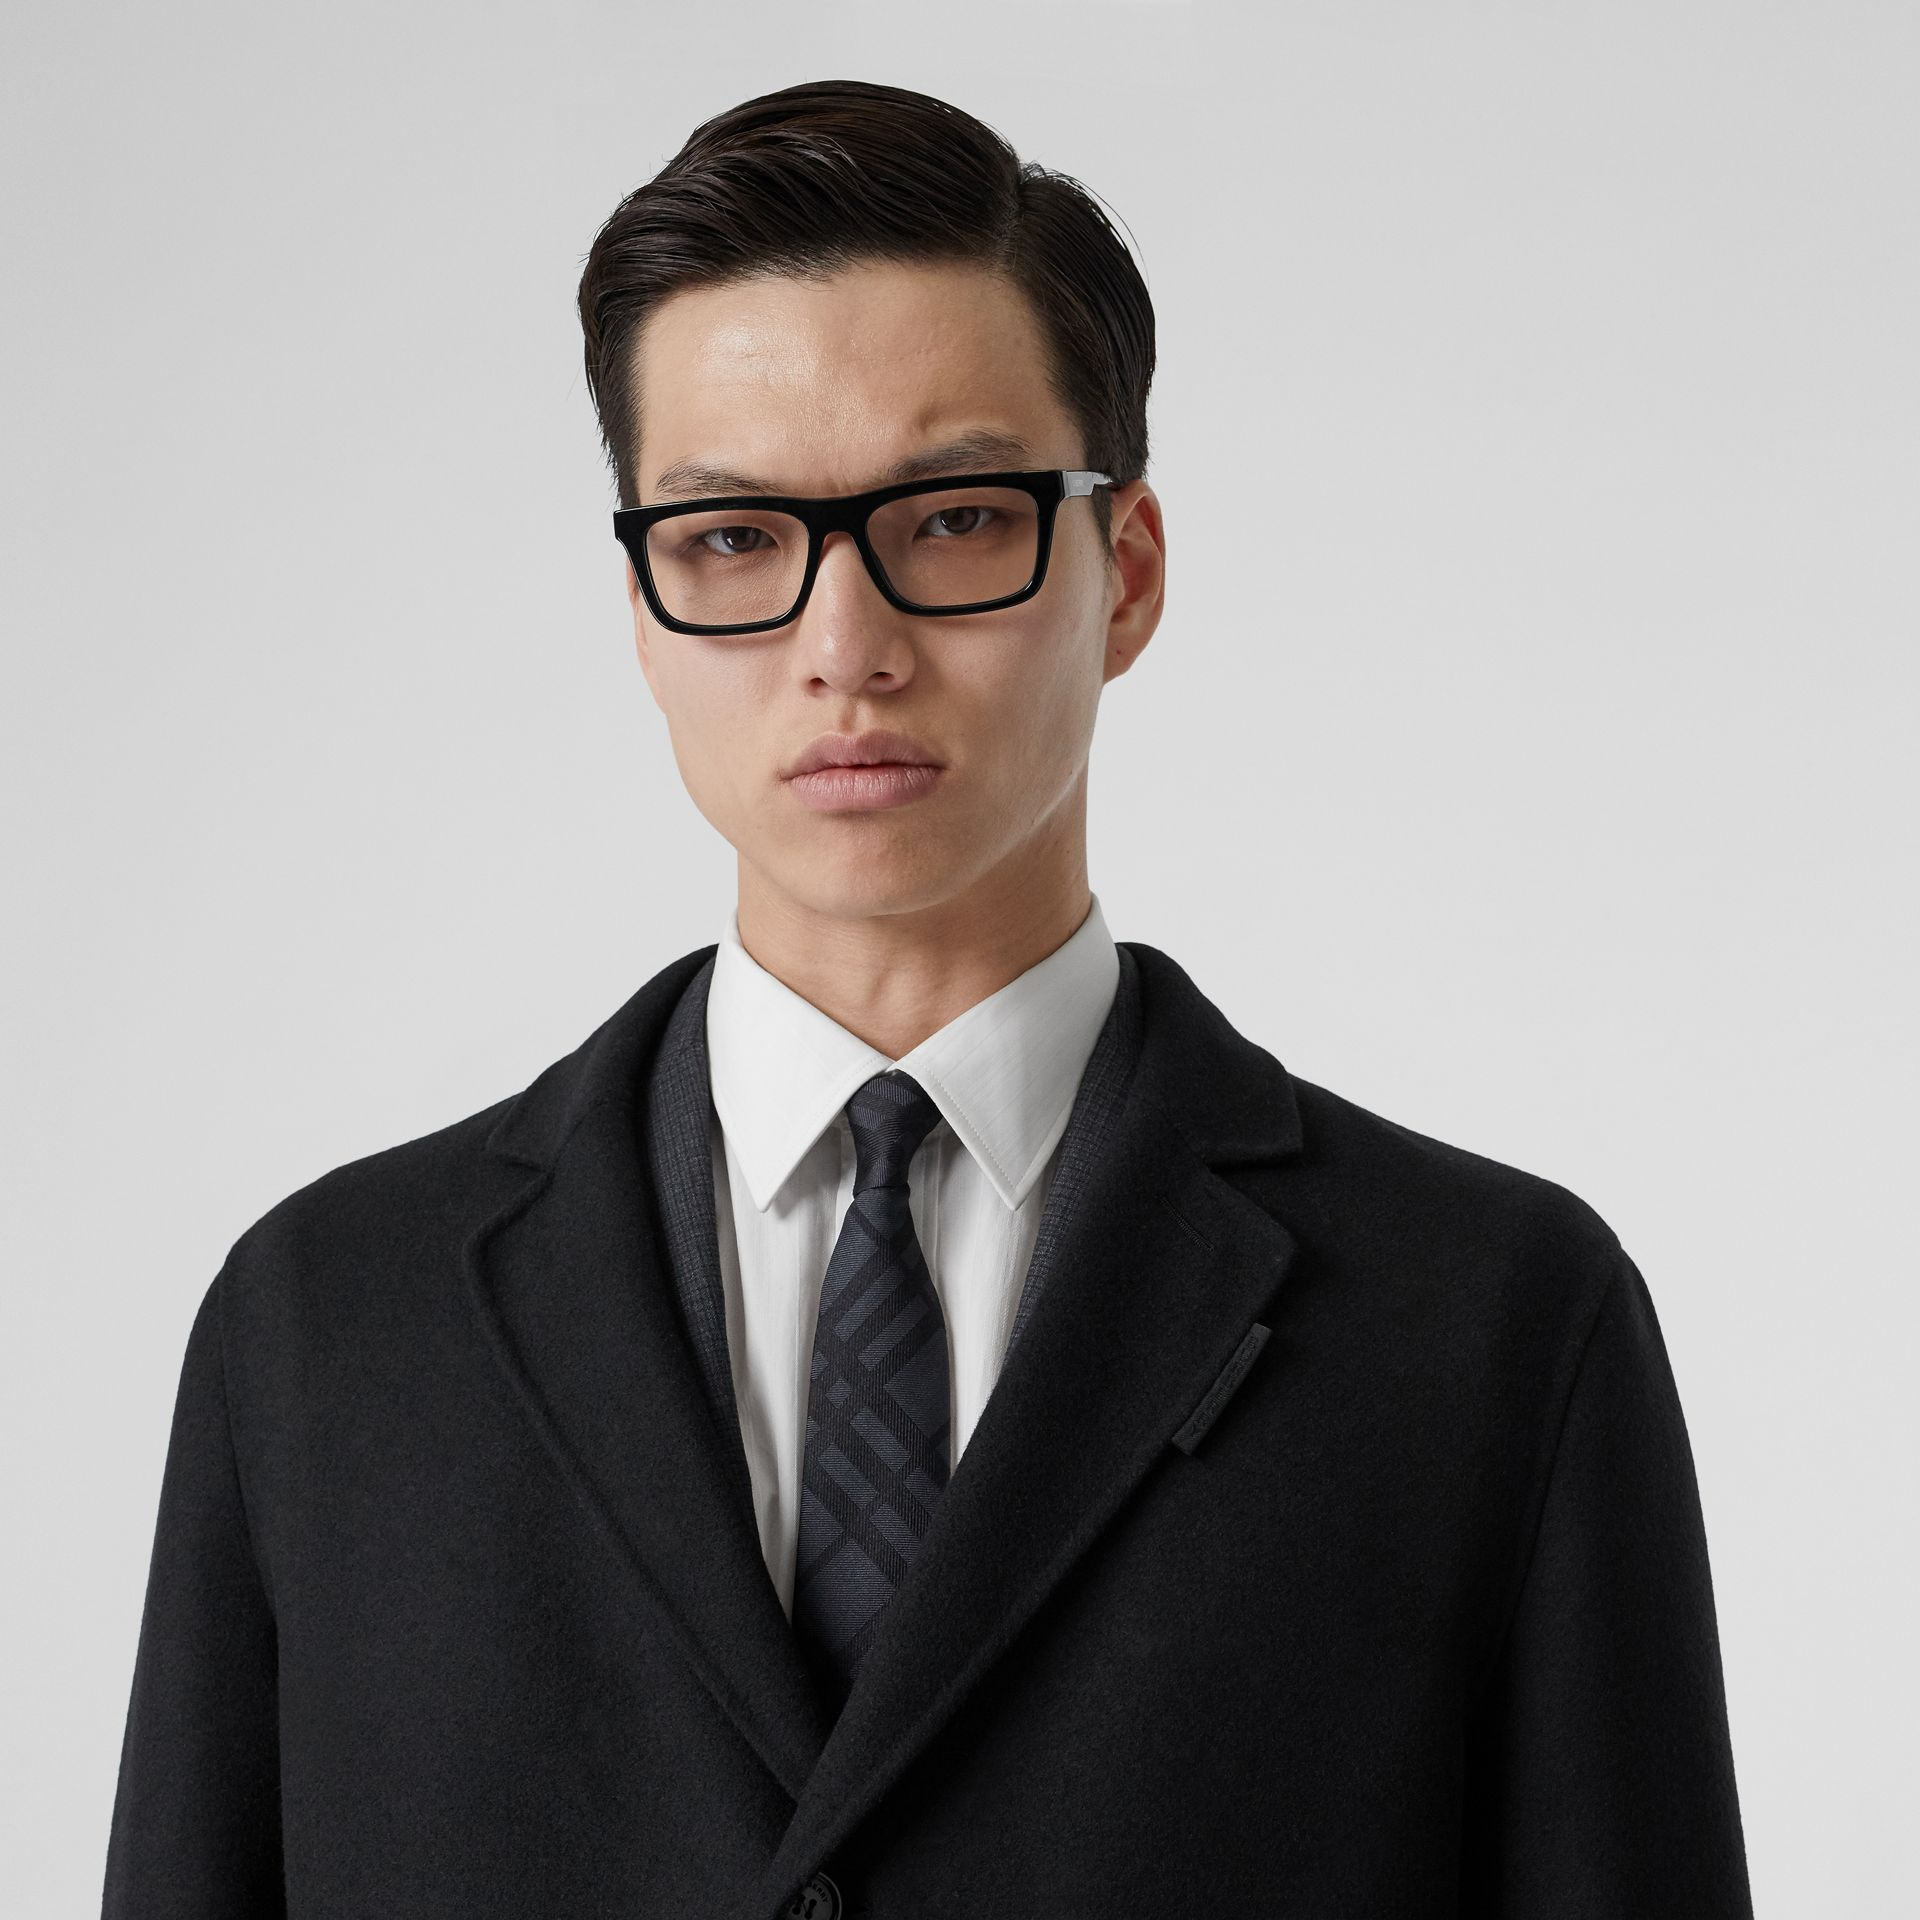 Wool Cashmere Lab Coat in Black - Men | Burberry - gallery image 1